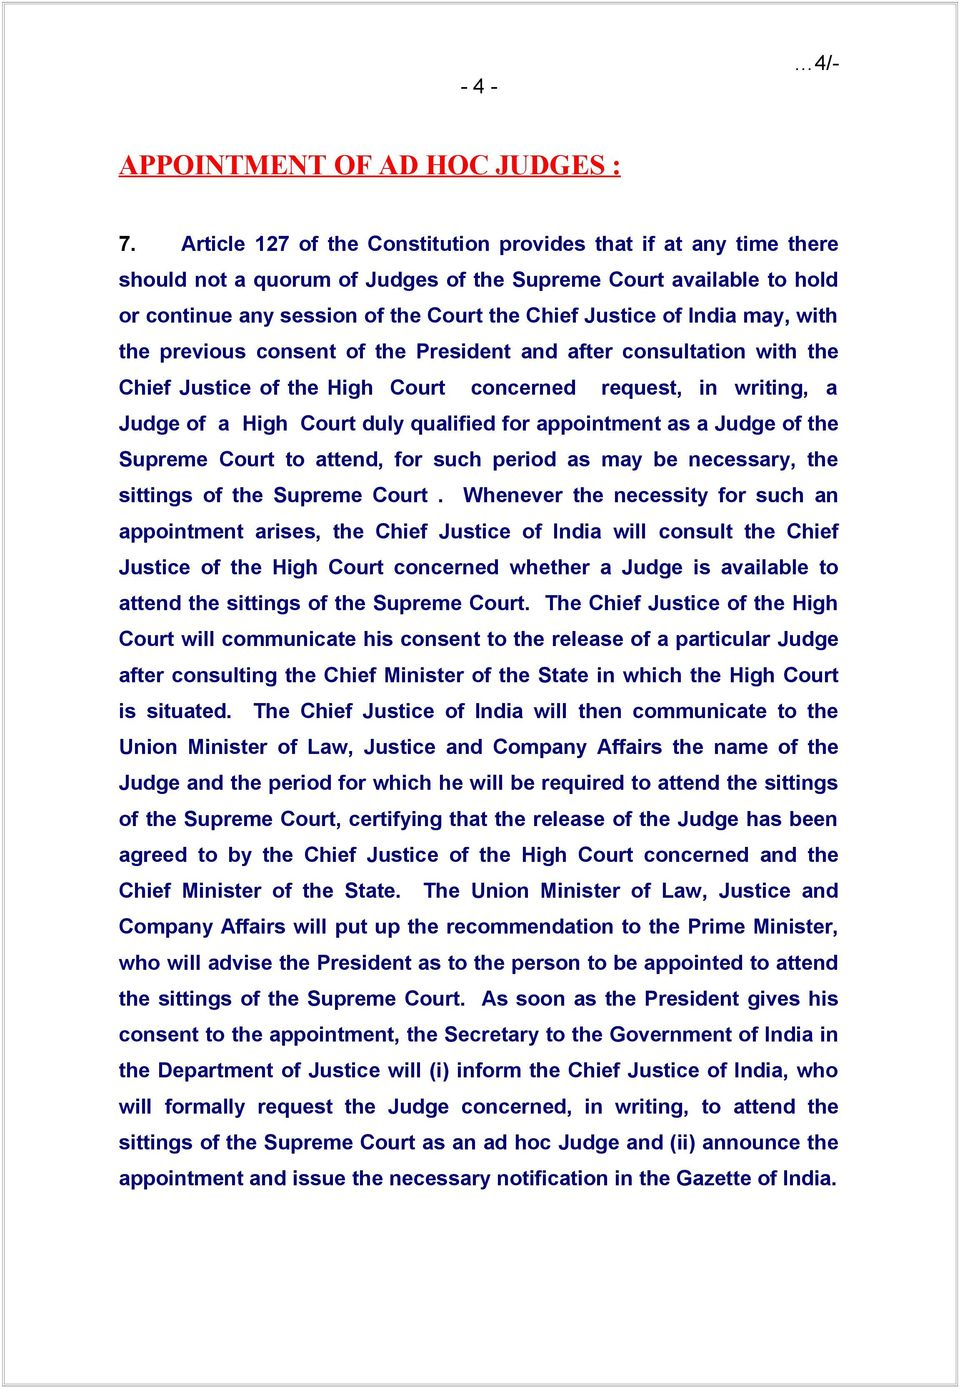 may, with the previous consent of the President and after consultation with the Chief Justice of the High Court concerned request, in writing, a Judge of a High Court duly qualified for appointment